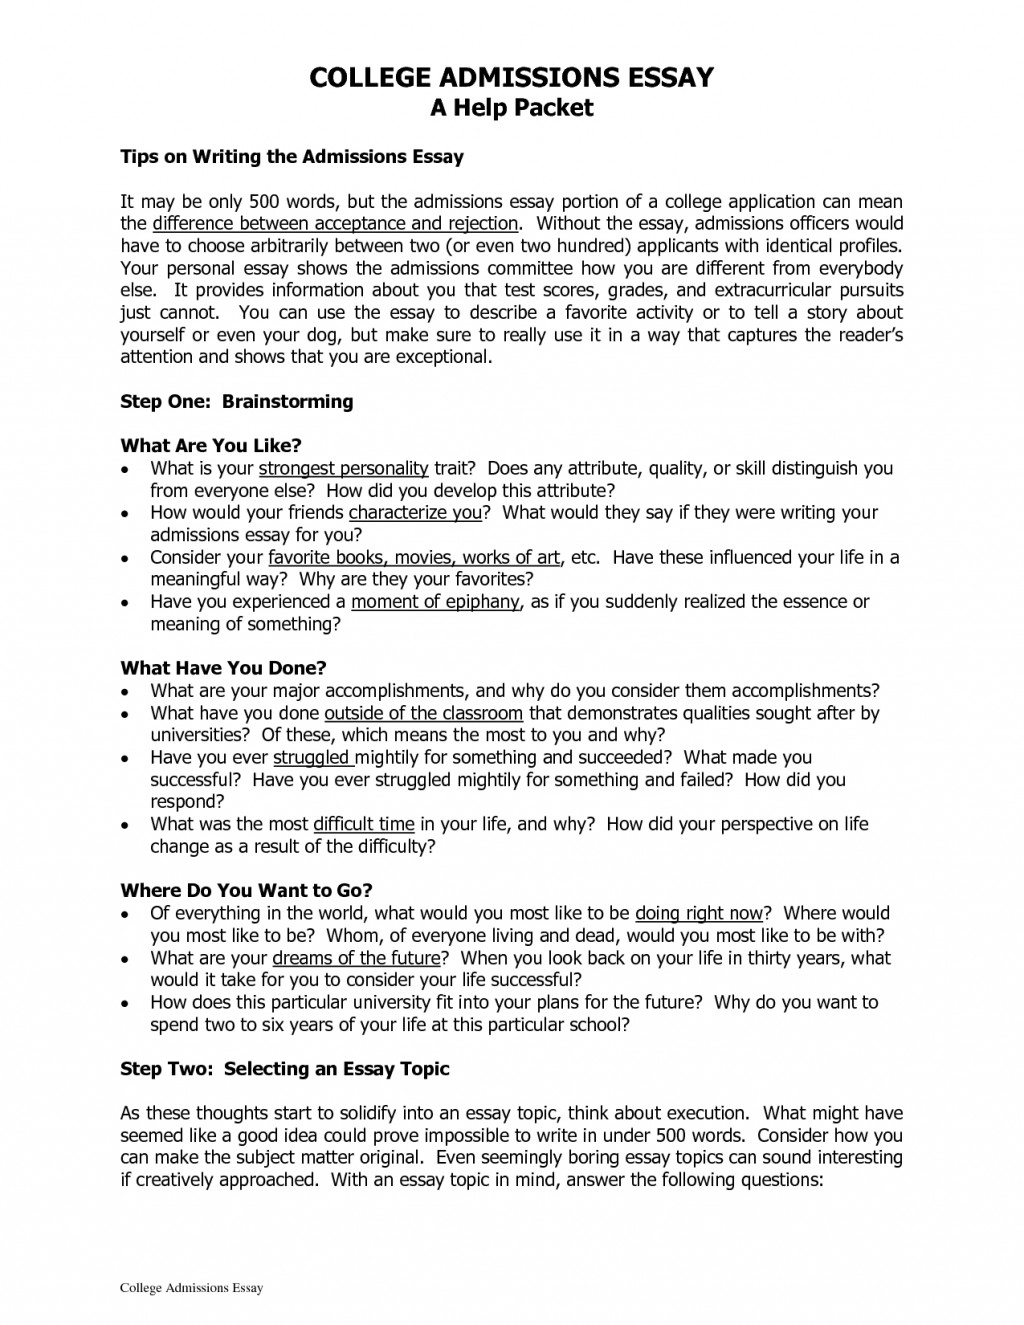 003 College Application Essays Writings And Words Pdf Writing Successful About How To Start Remarkable Essay Examples 500 Large